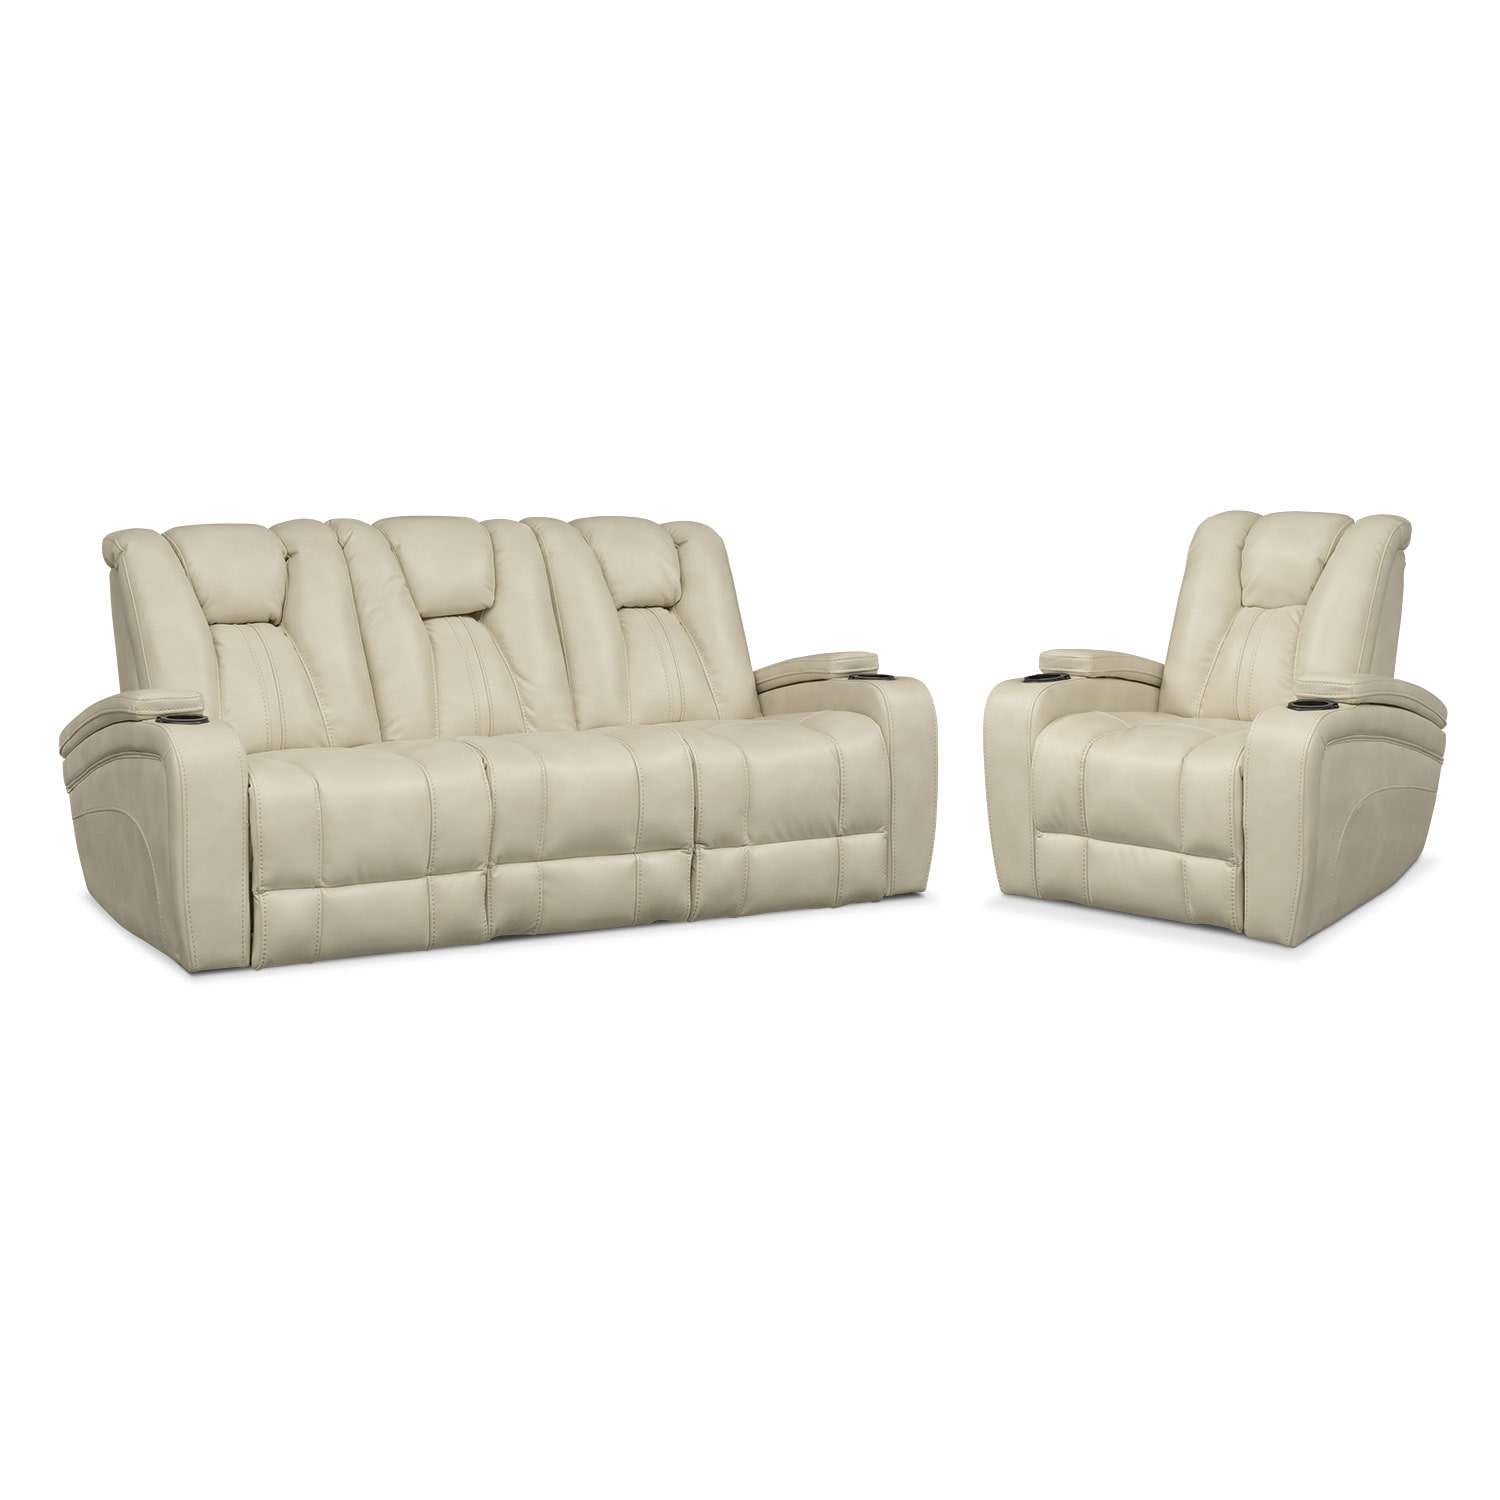 Living Room Furniture - Pulsar Dual Power Reclining Sofa and Power Recliner Set - Cream